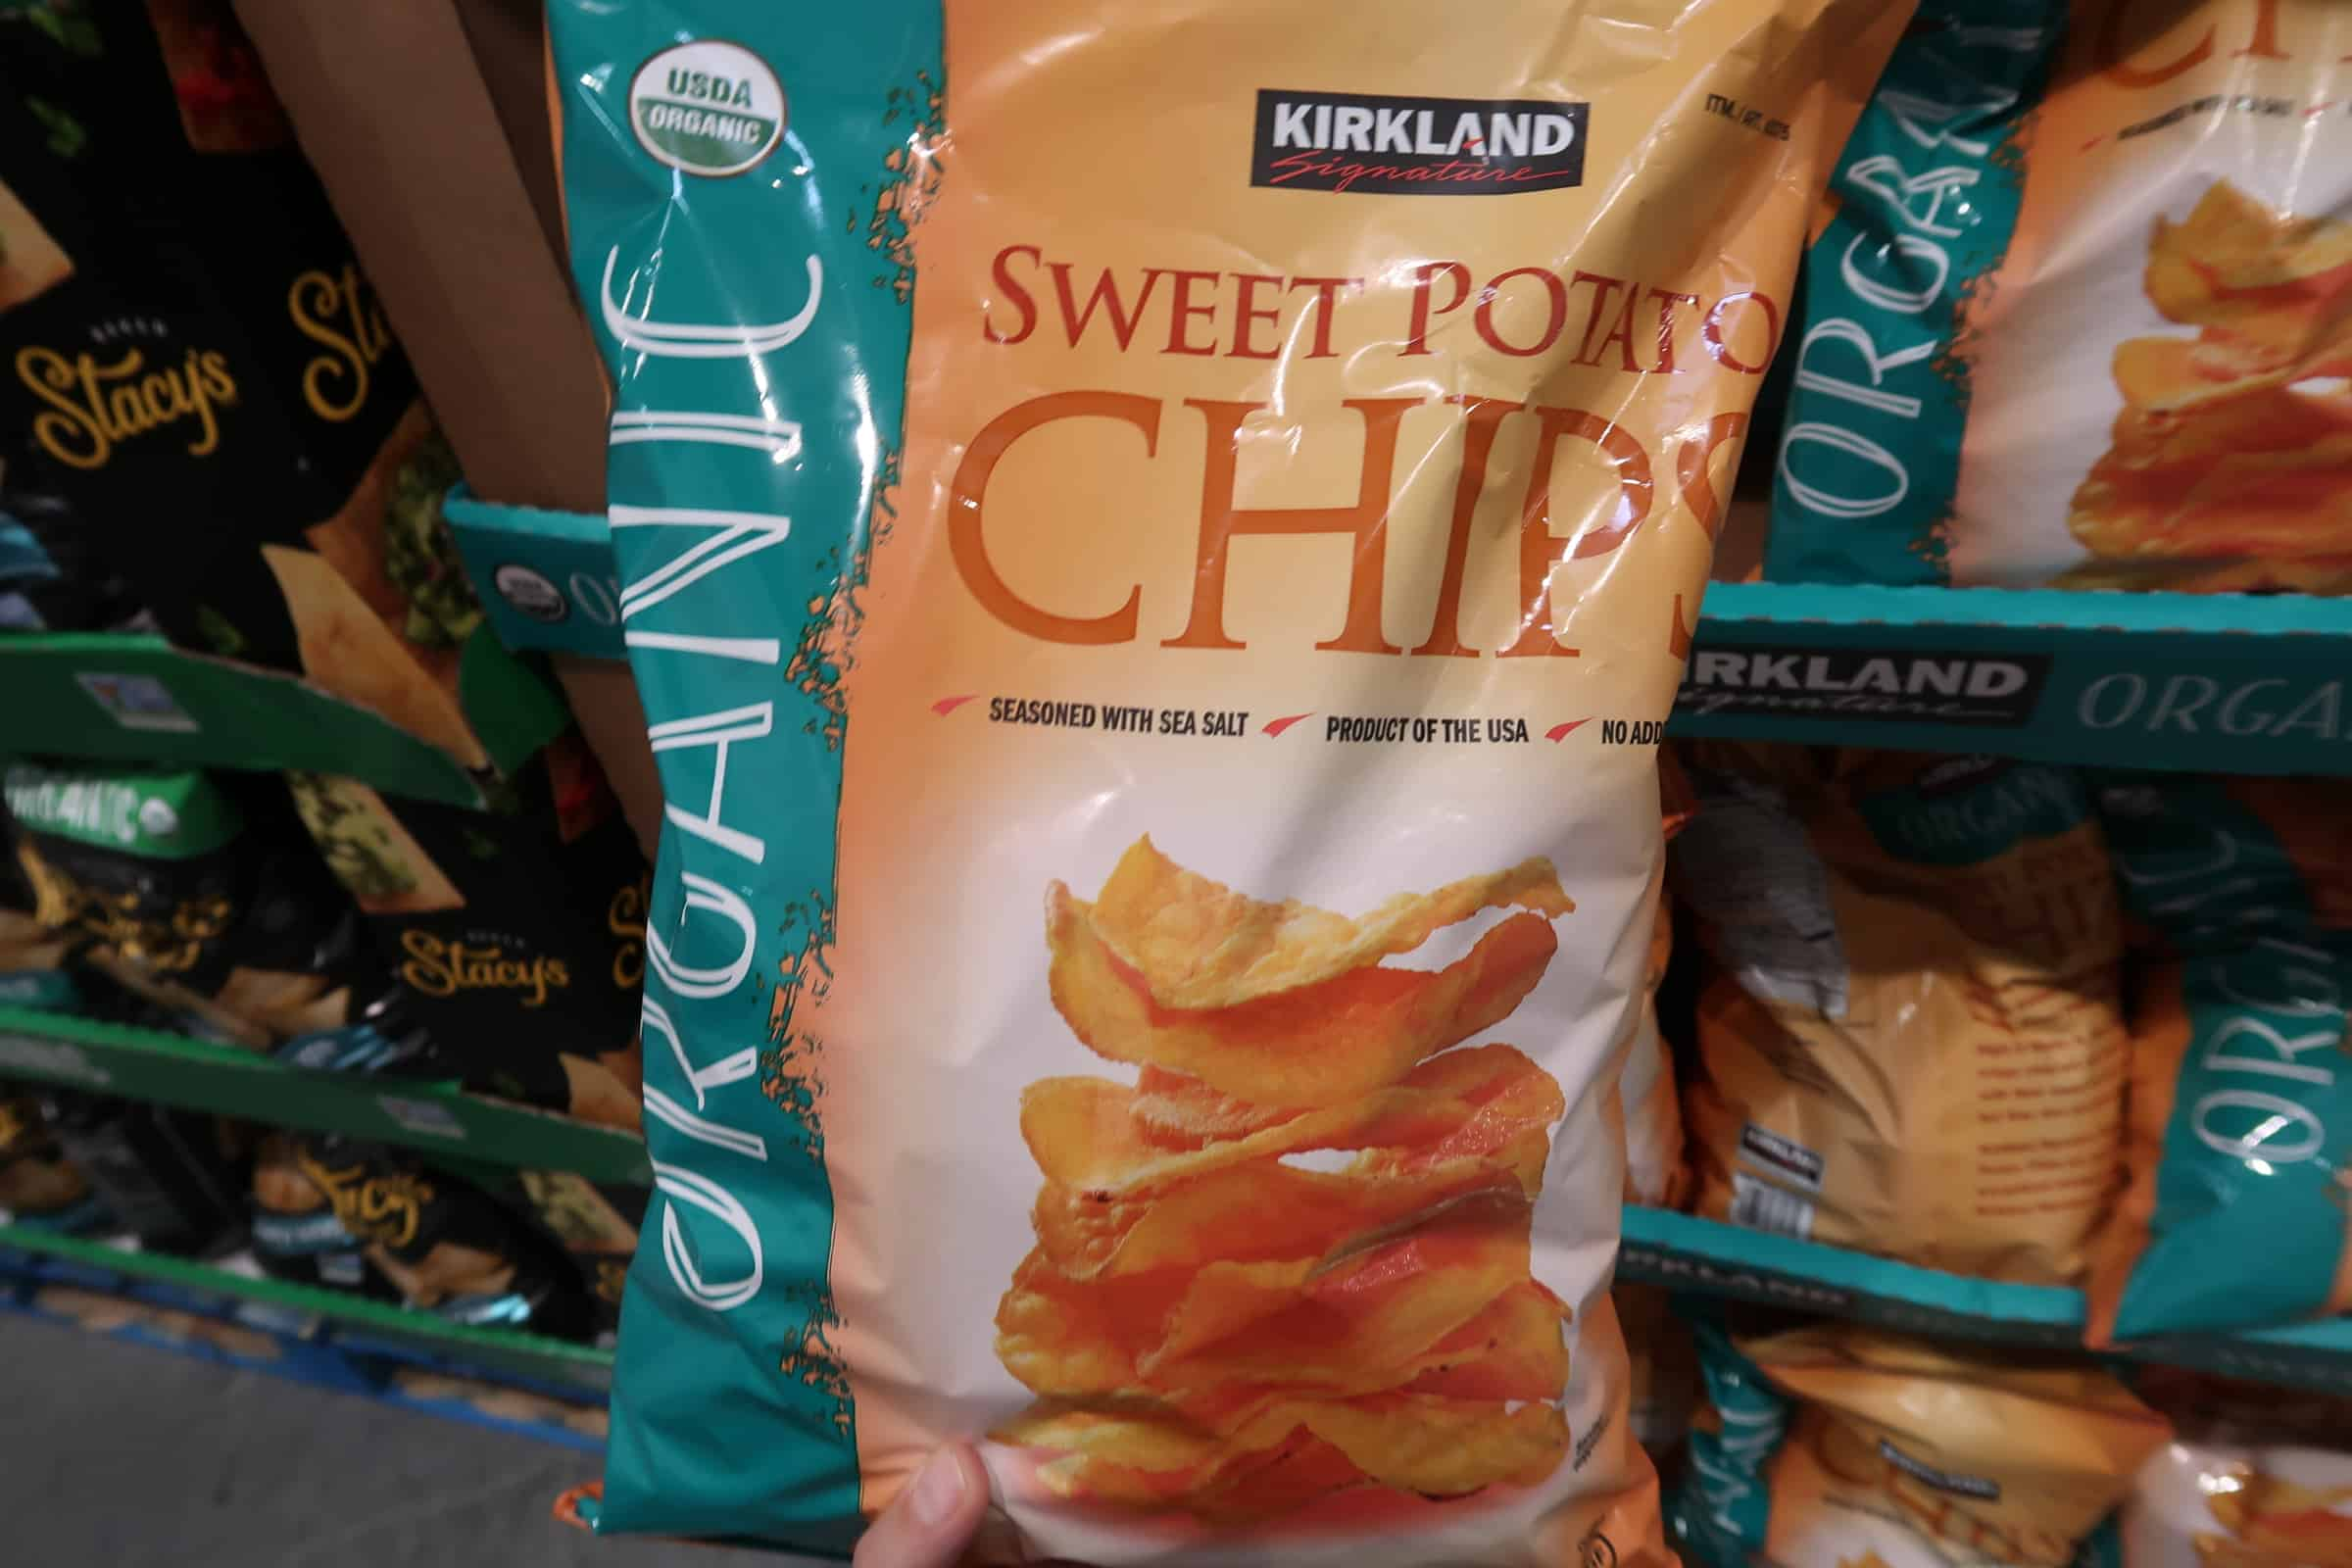 Where Have You Been All My Life Kirkland Sweet Potato Chips?